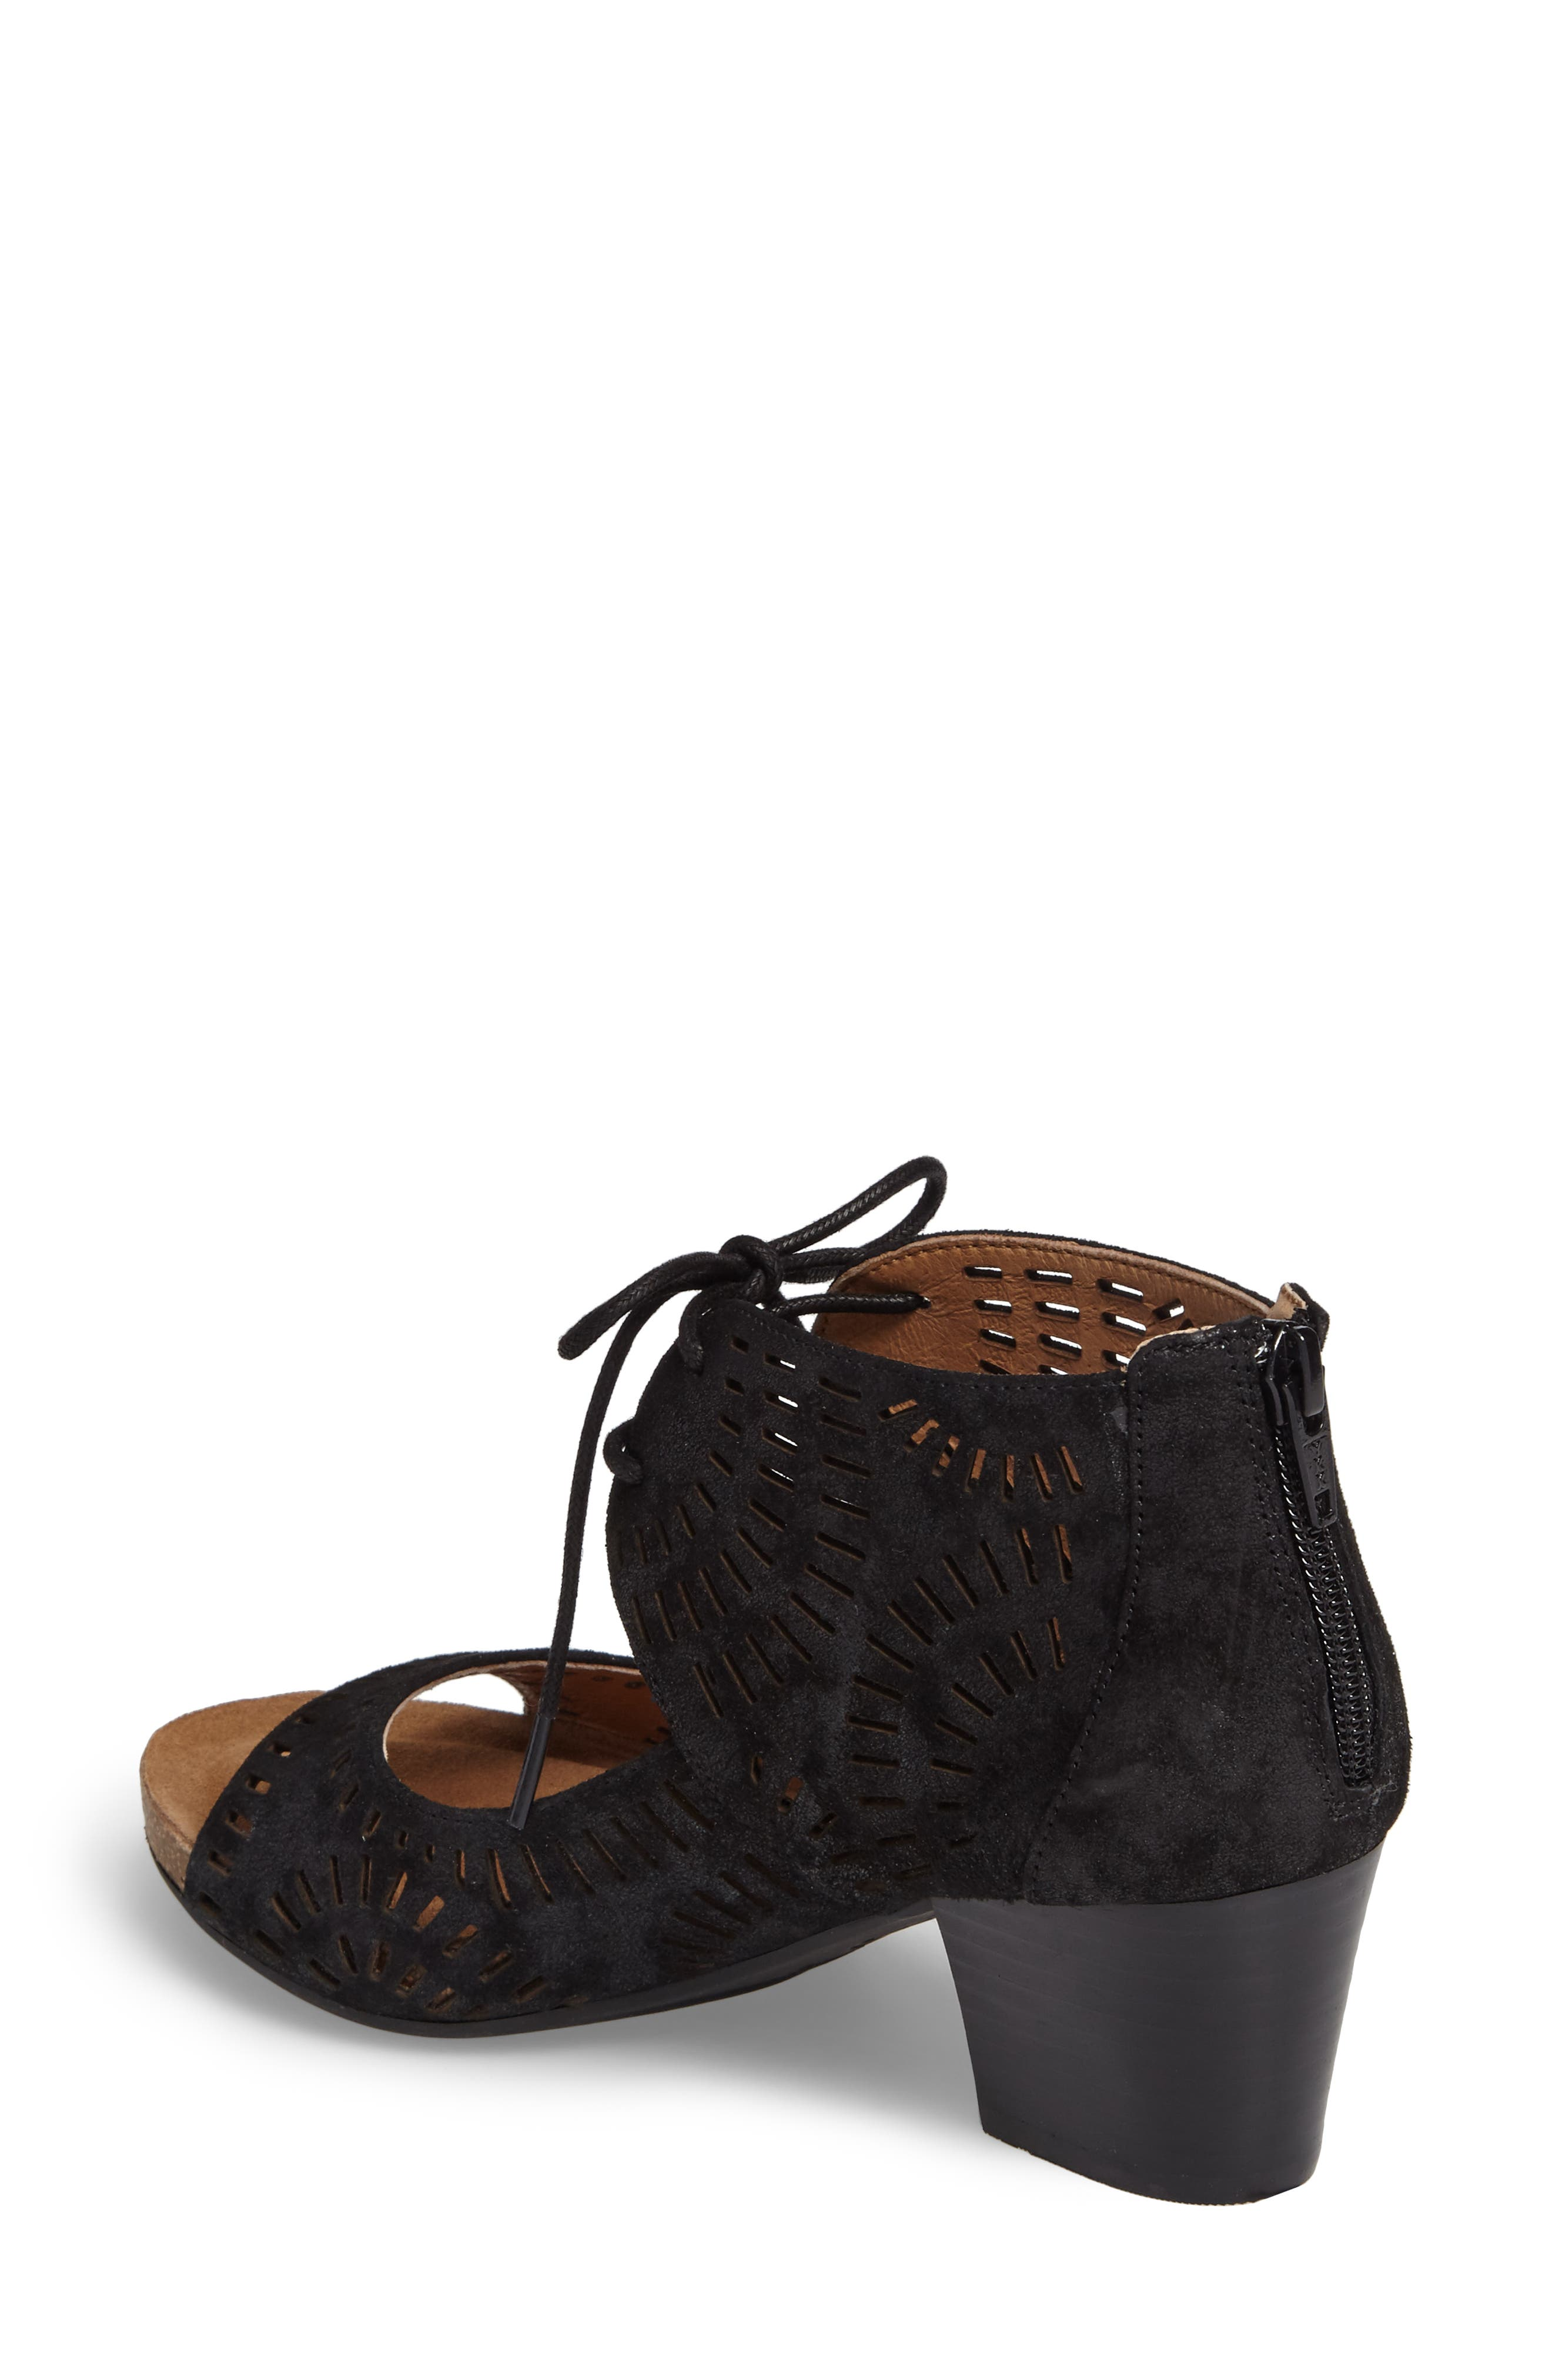 Modesto Perforated Sandal,                             Alternate thumbnail 2, color,                             Black Distressed Foil Suede